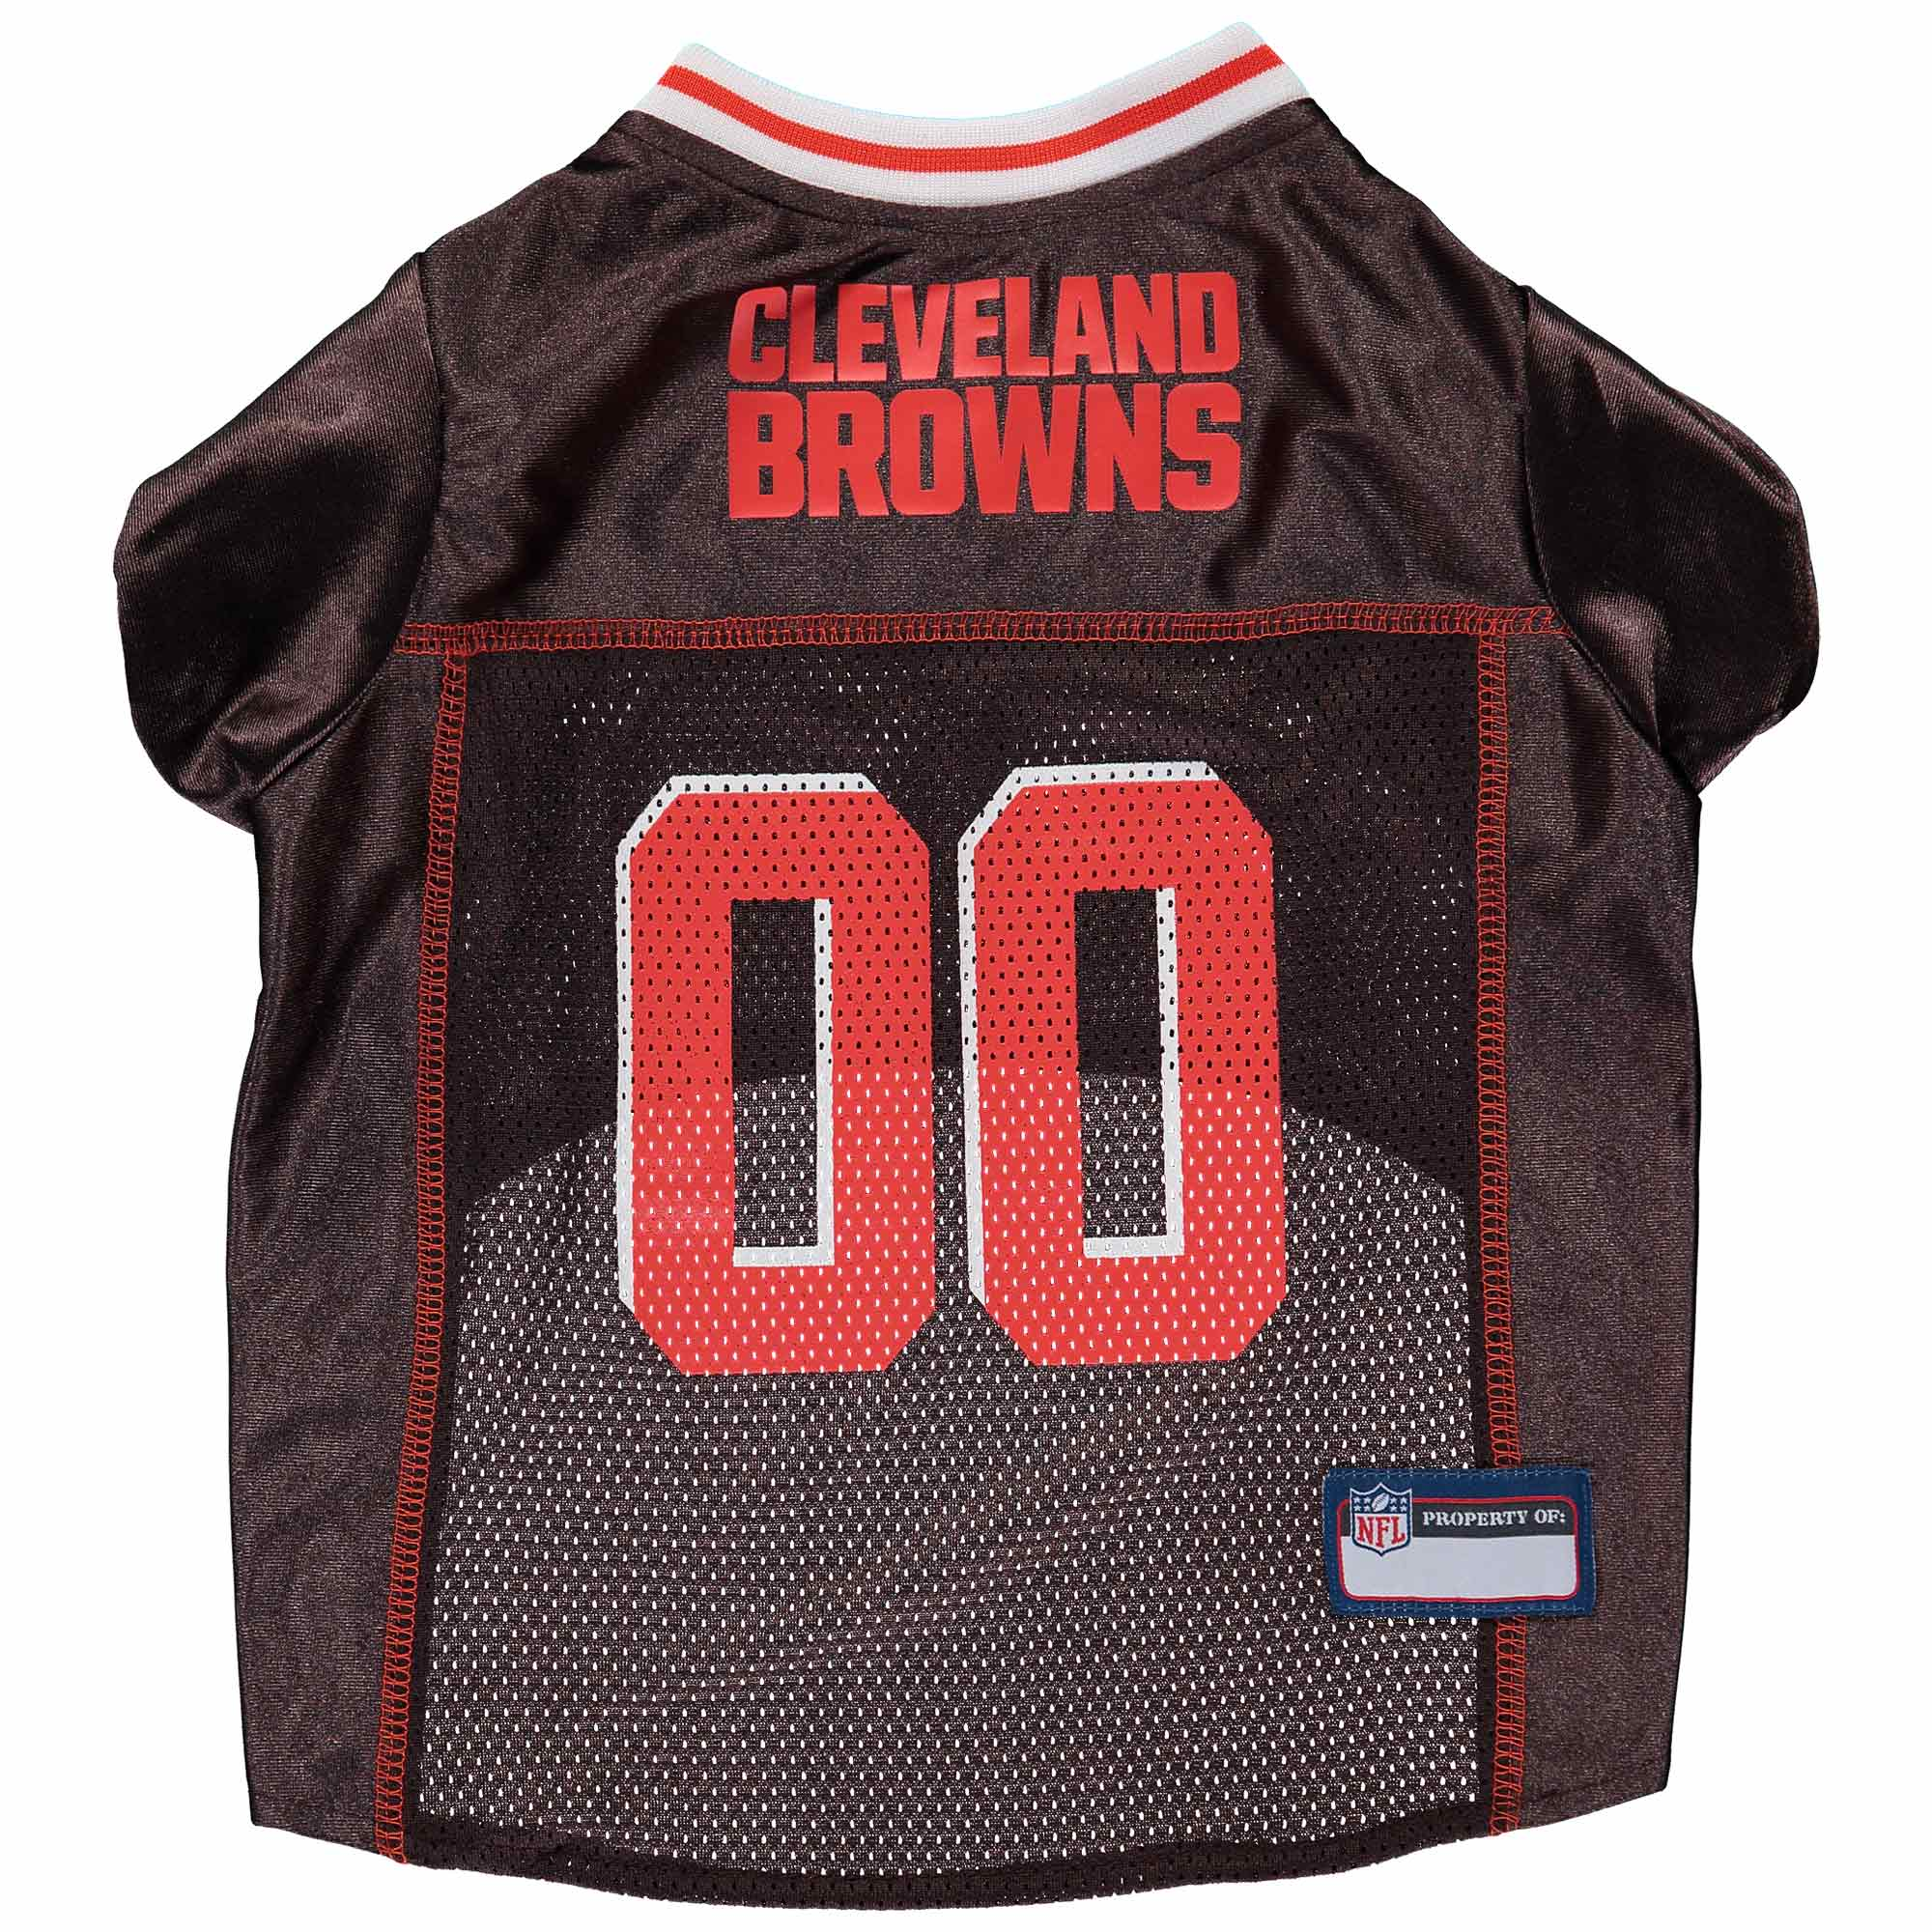 Cleveland Browns Mesh Dog Jersey